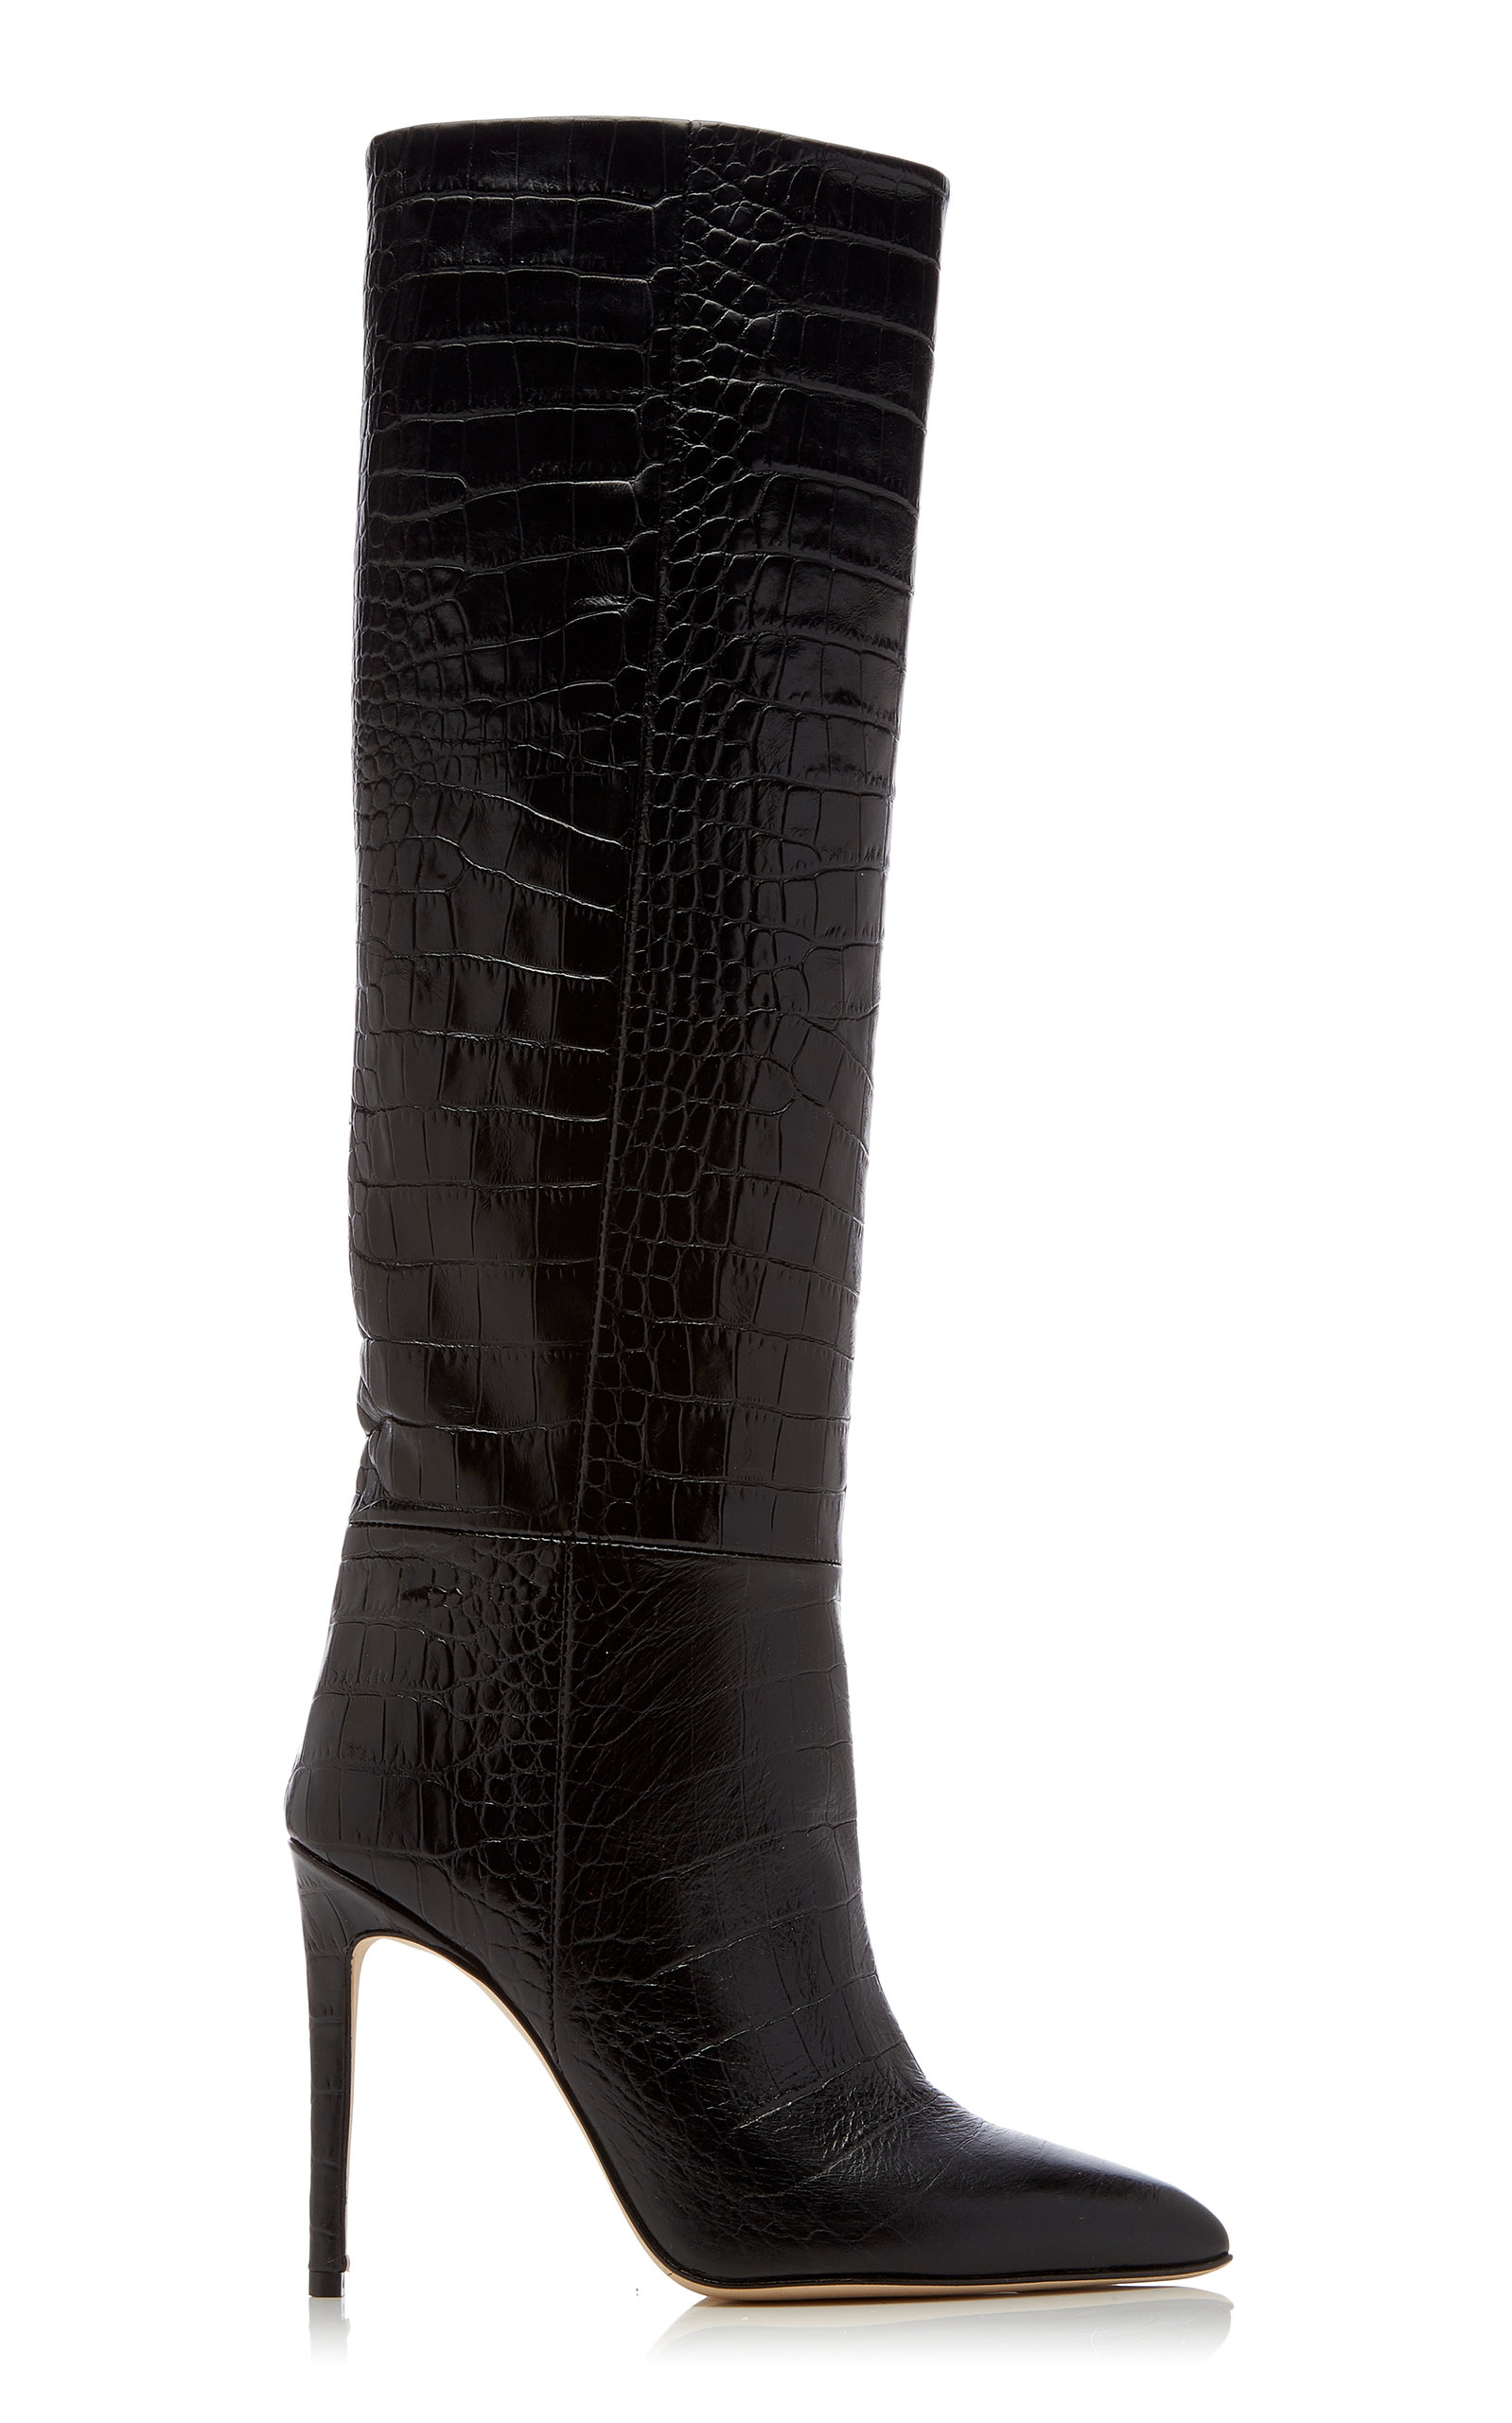 9e71299d3 Paris Texas Croc-Embossed Leather Knee Boots. CLOSE. Loading